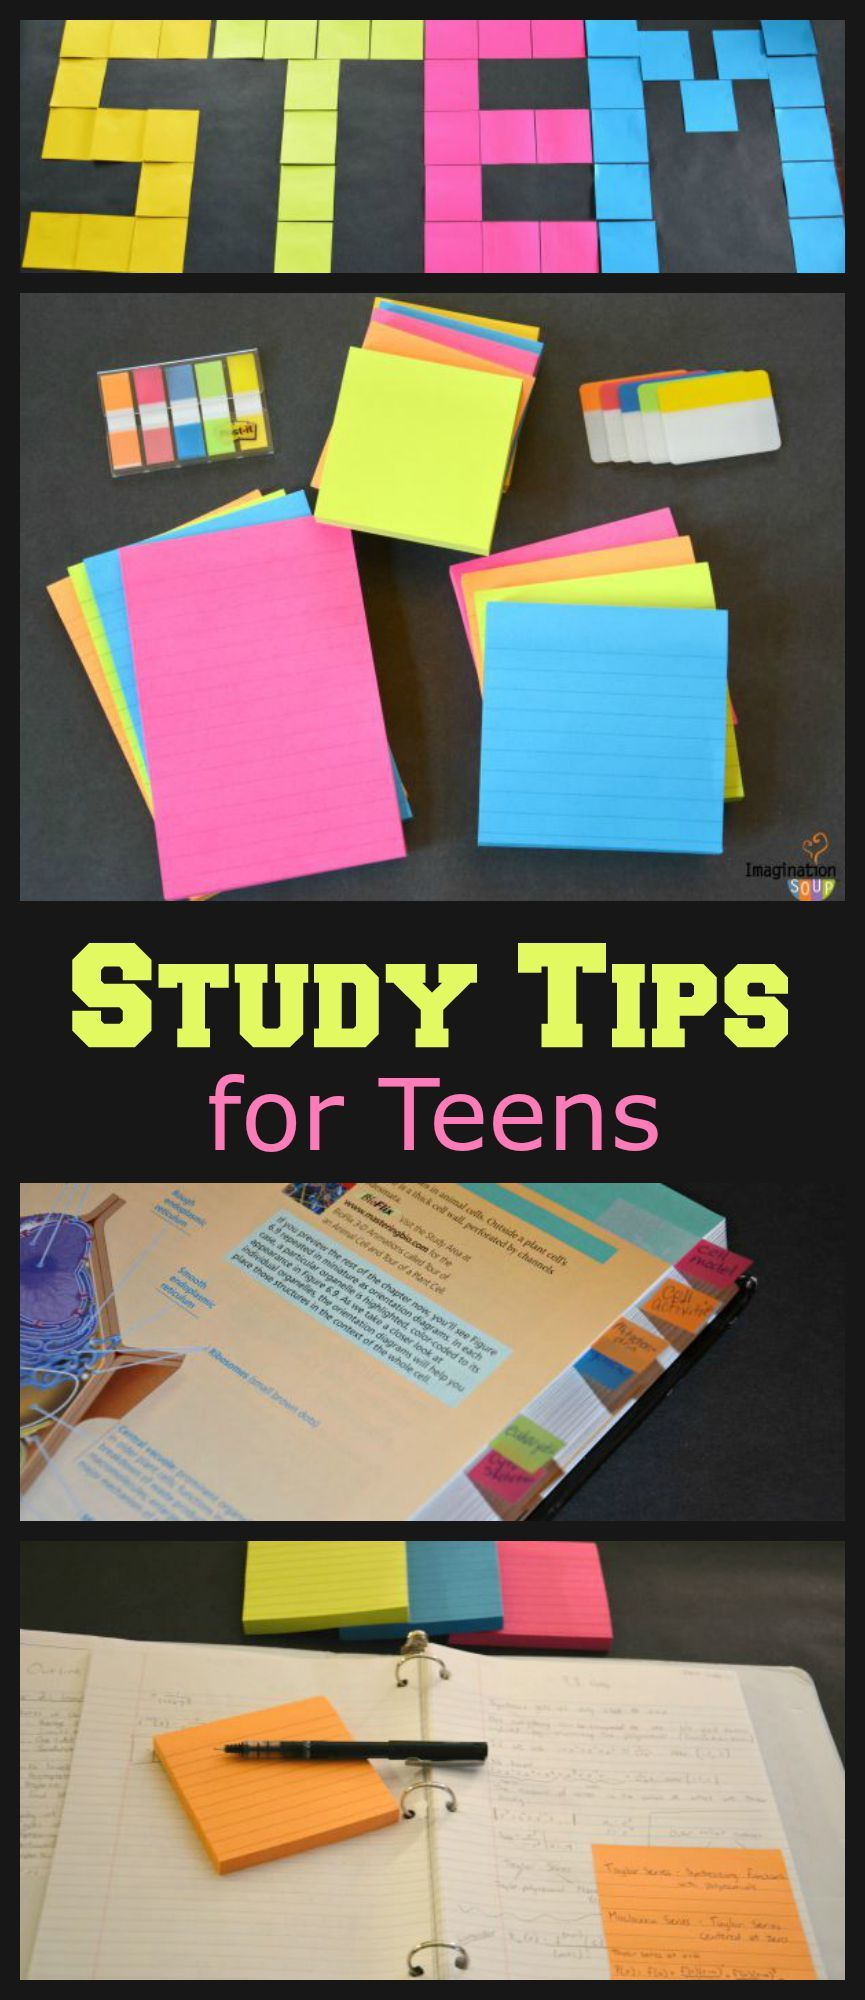 Stem Study Tips Teens Habits School